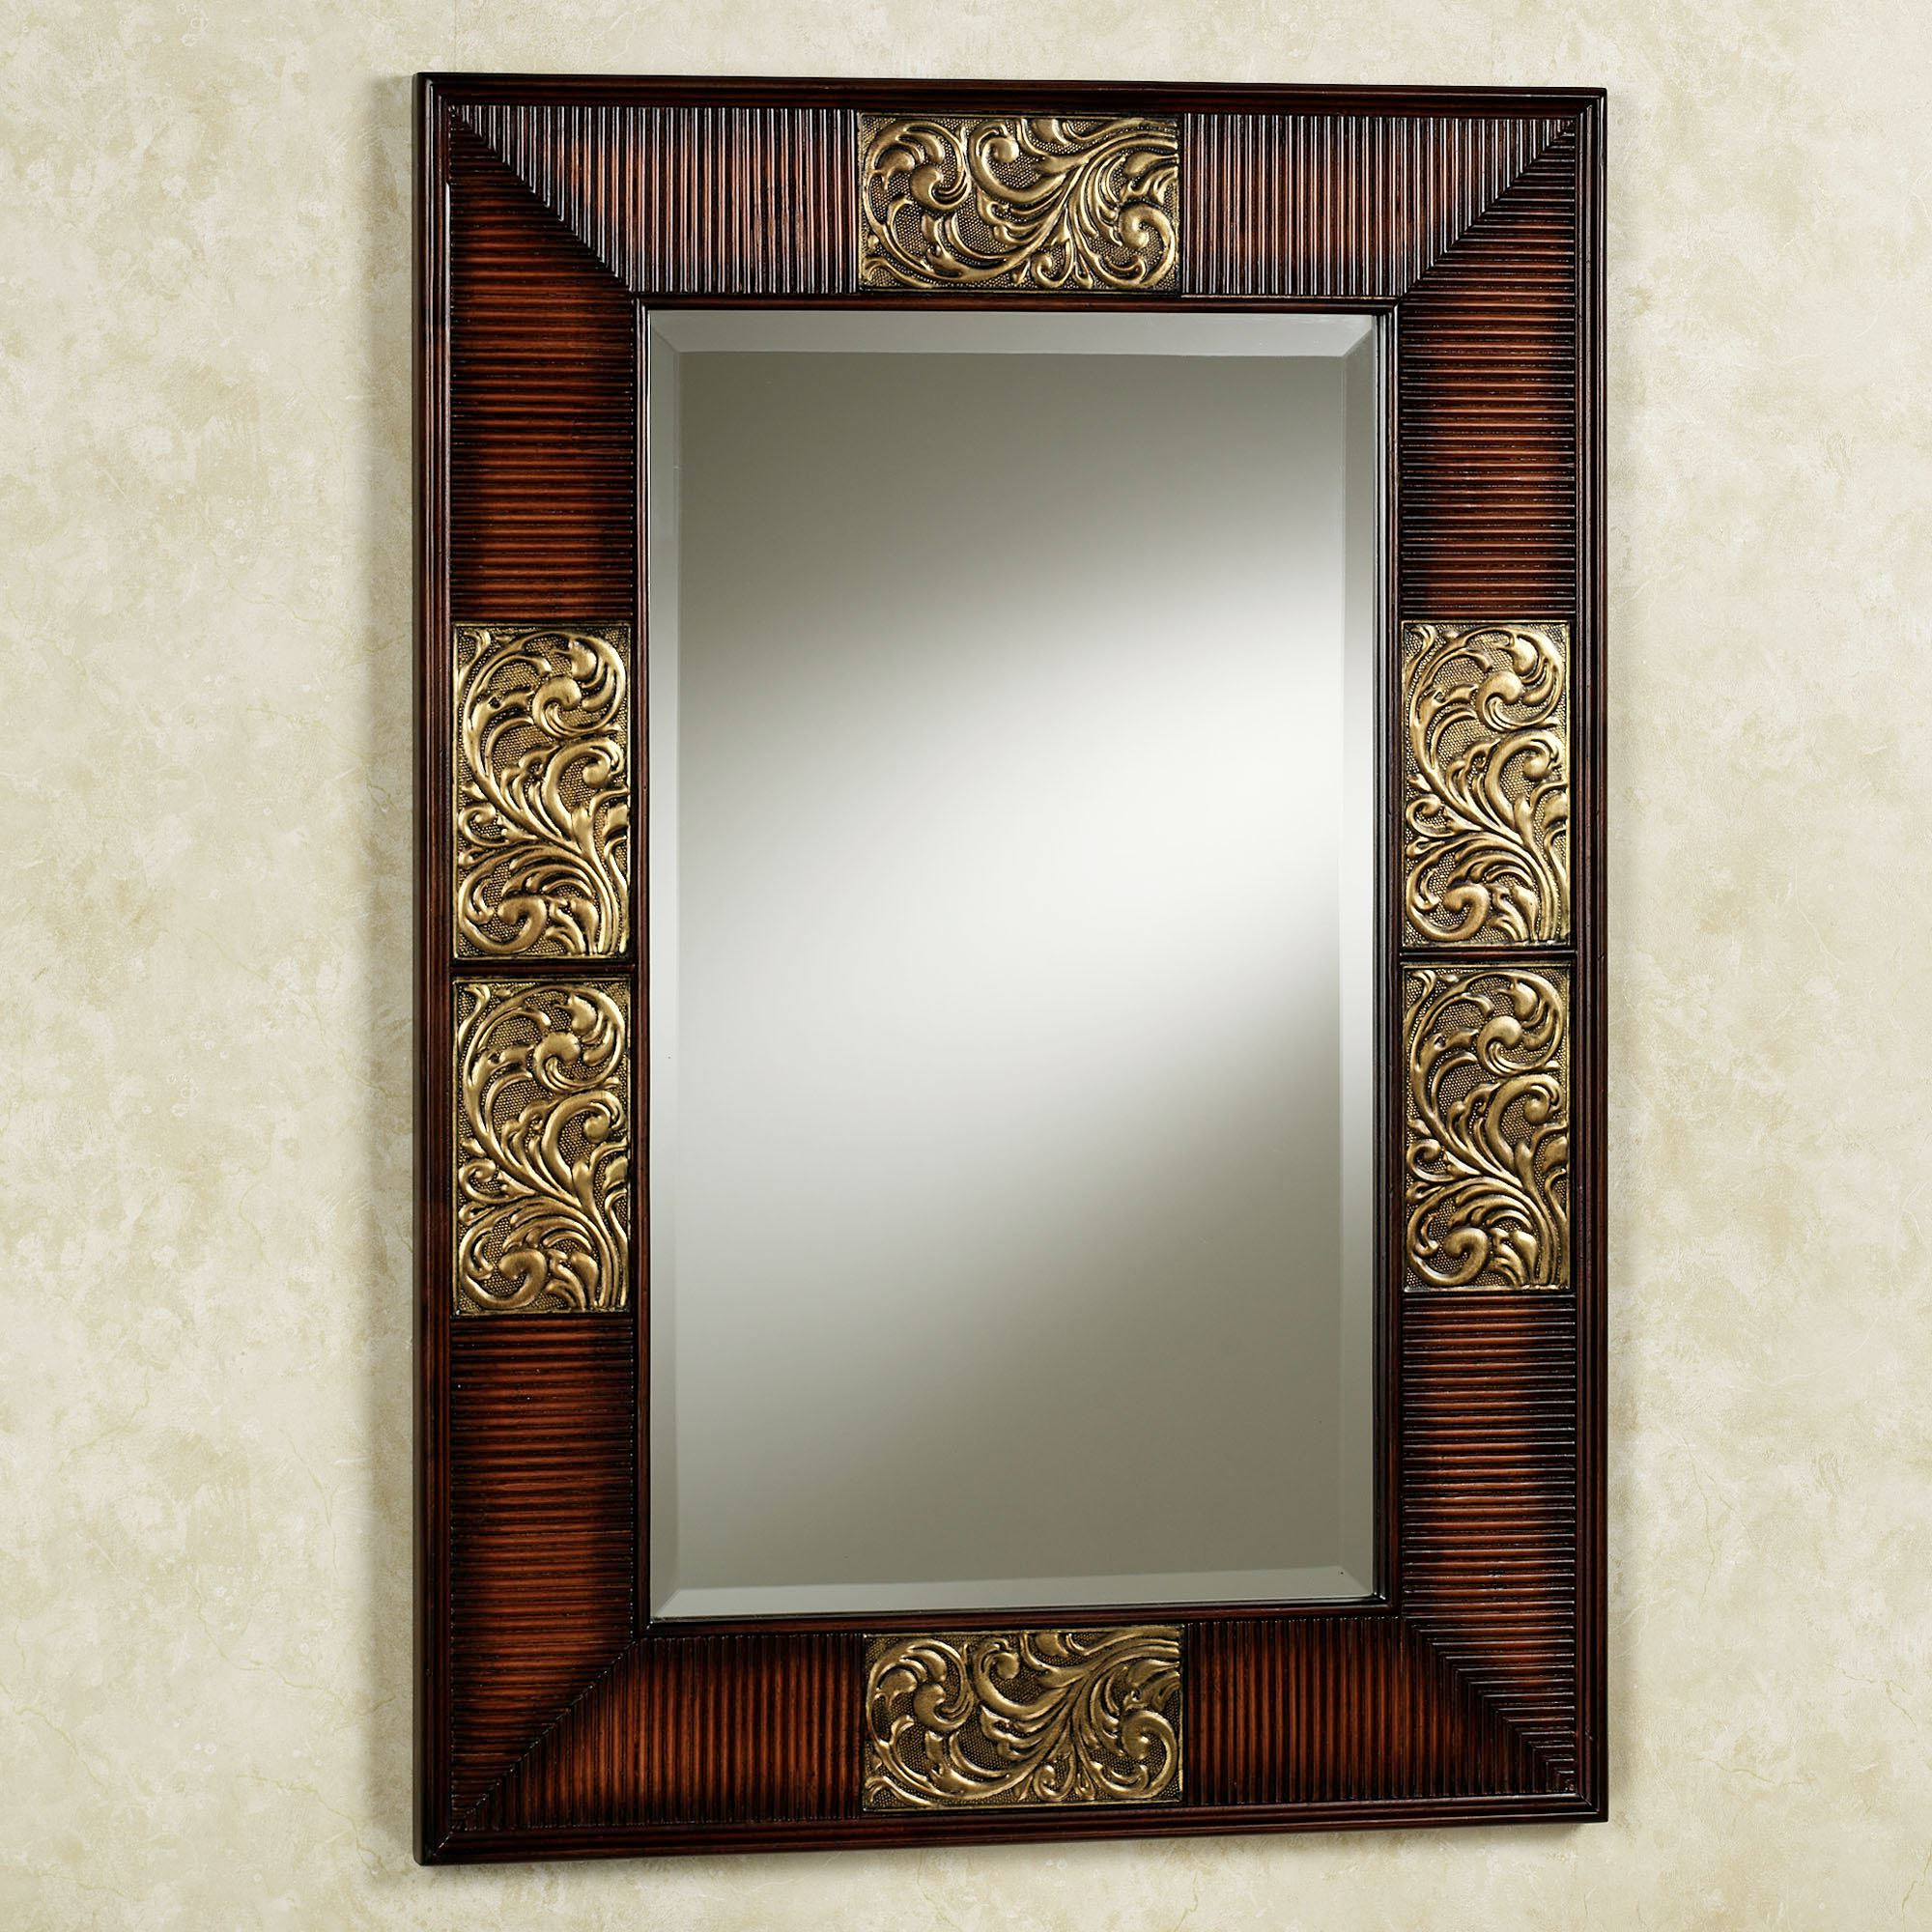 Sarantino Wall Mirror Pertaining To Most Up To Date Entryway Wall Mirrors (View 18 of 20)